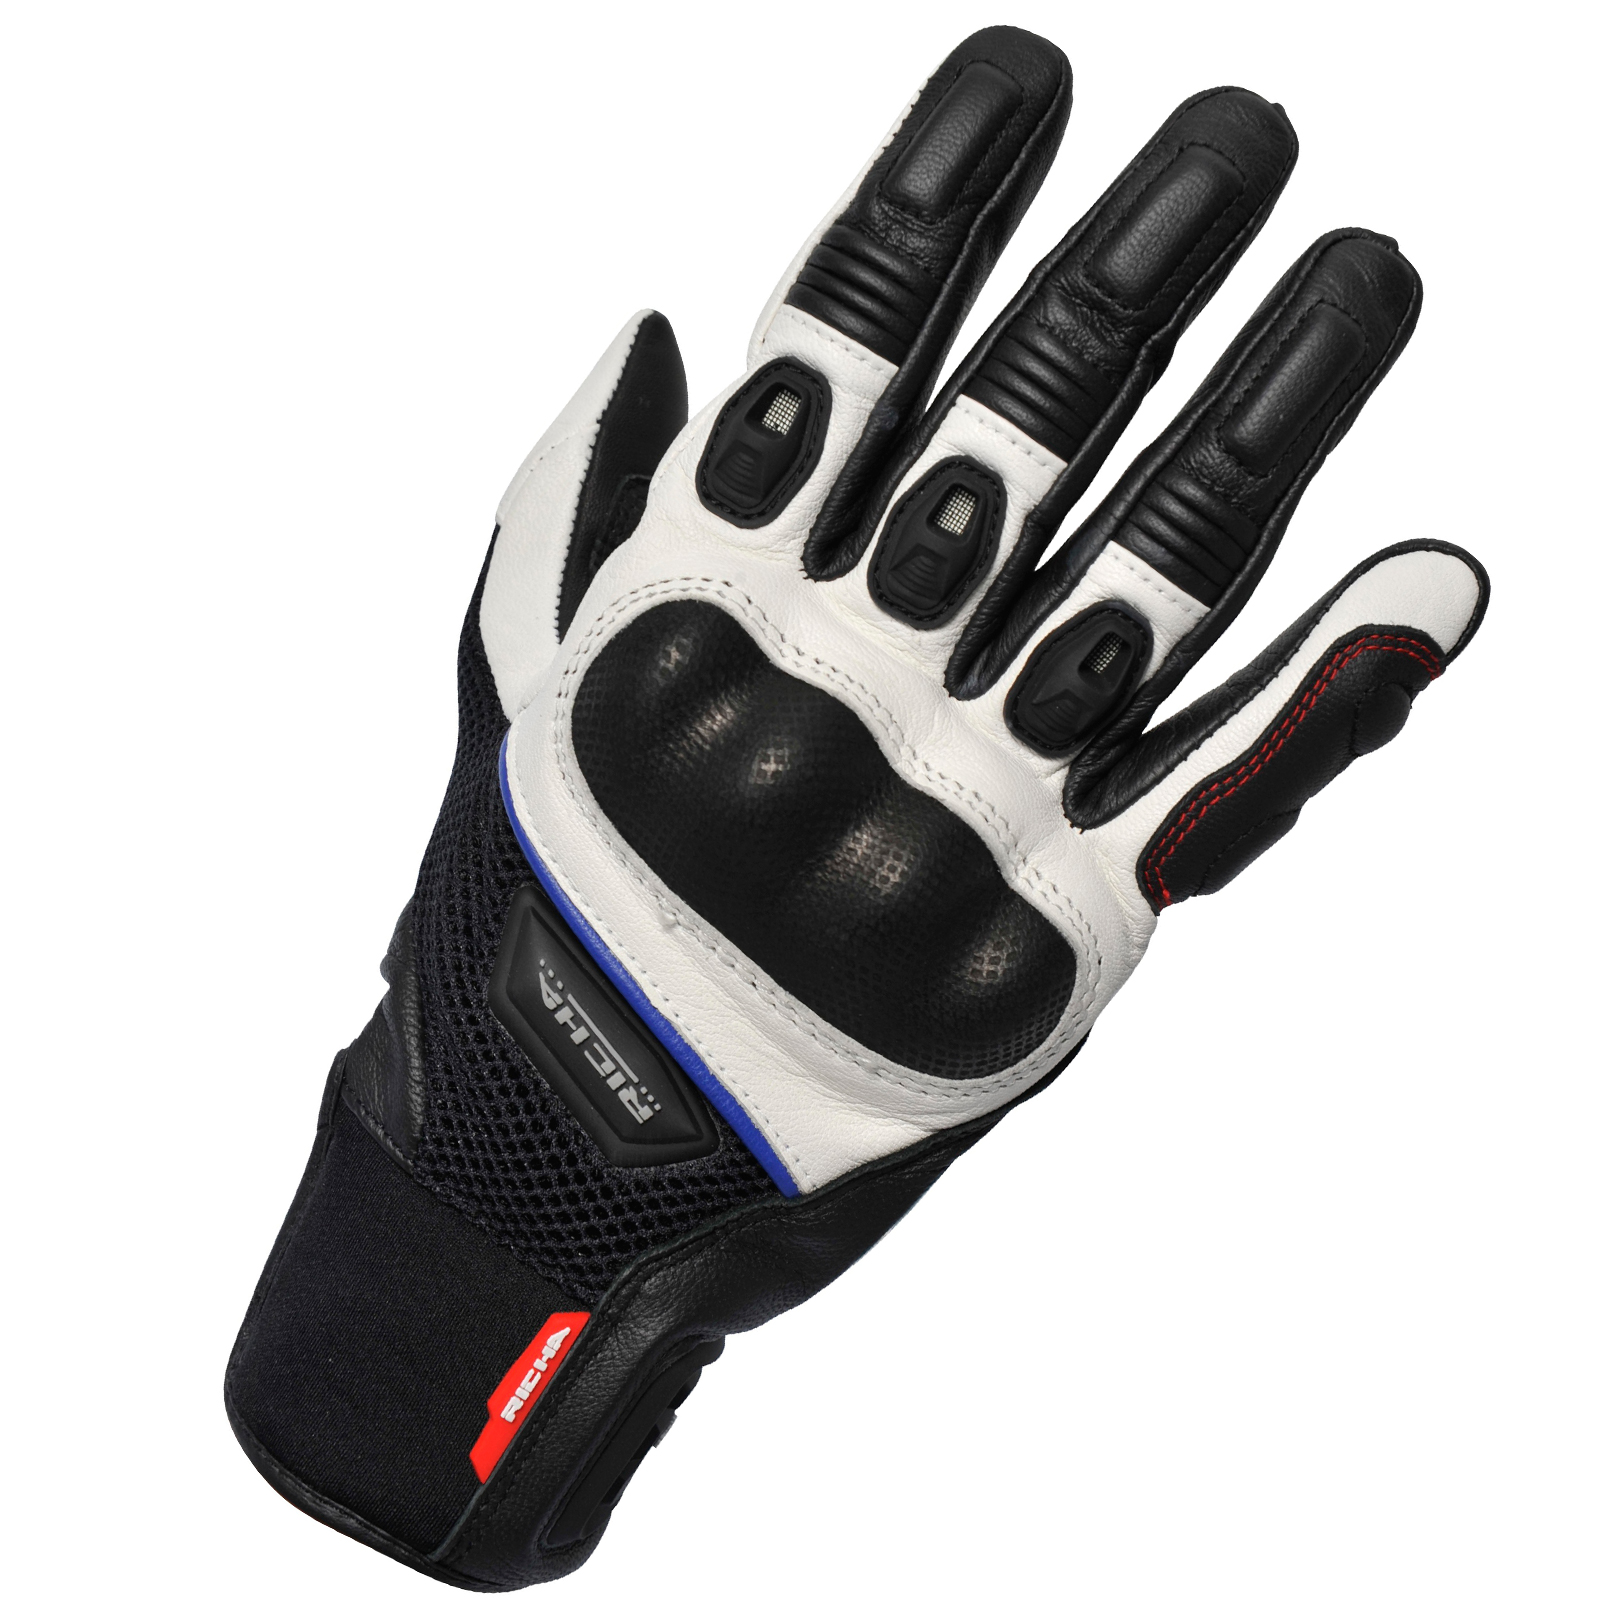 Motorcycle gloves ce approved - Richa Blast Motorcycle Gloves Leather Air Strech Mesh